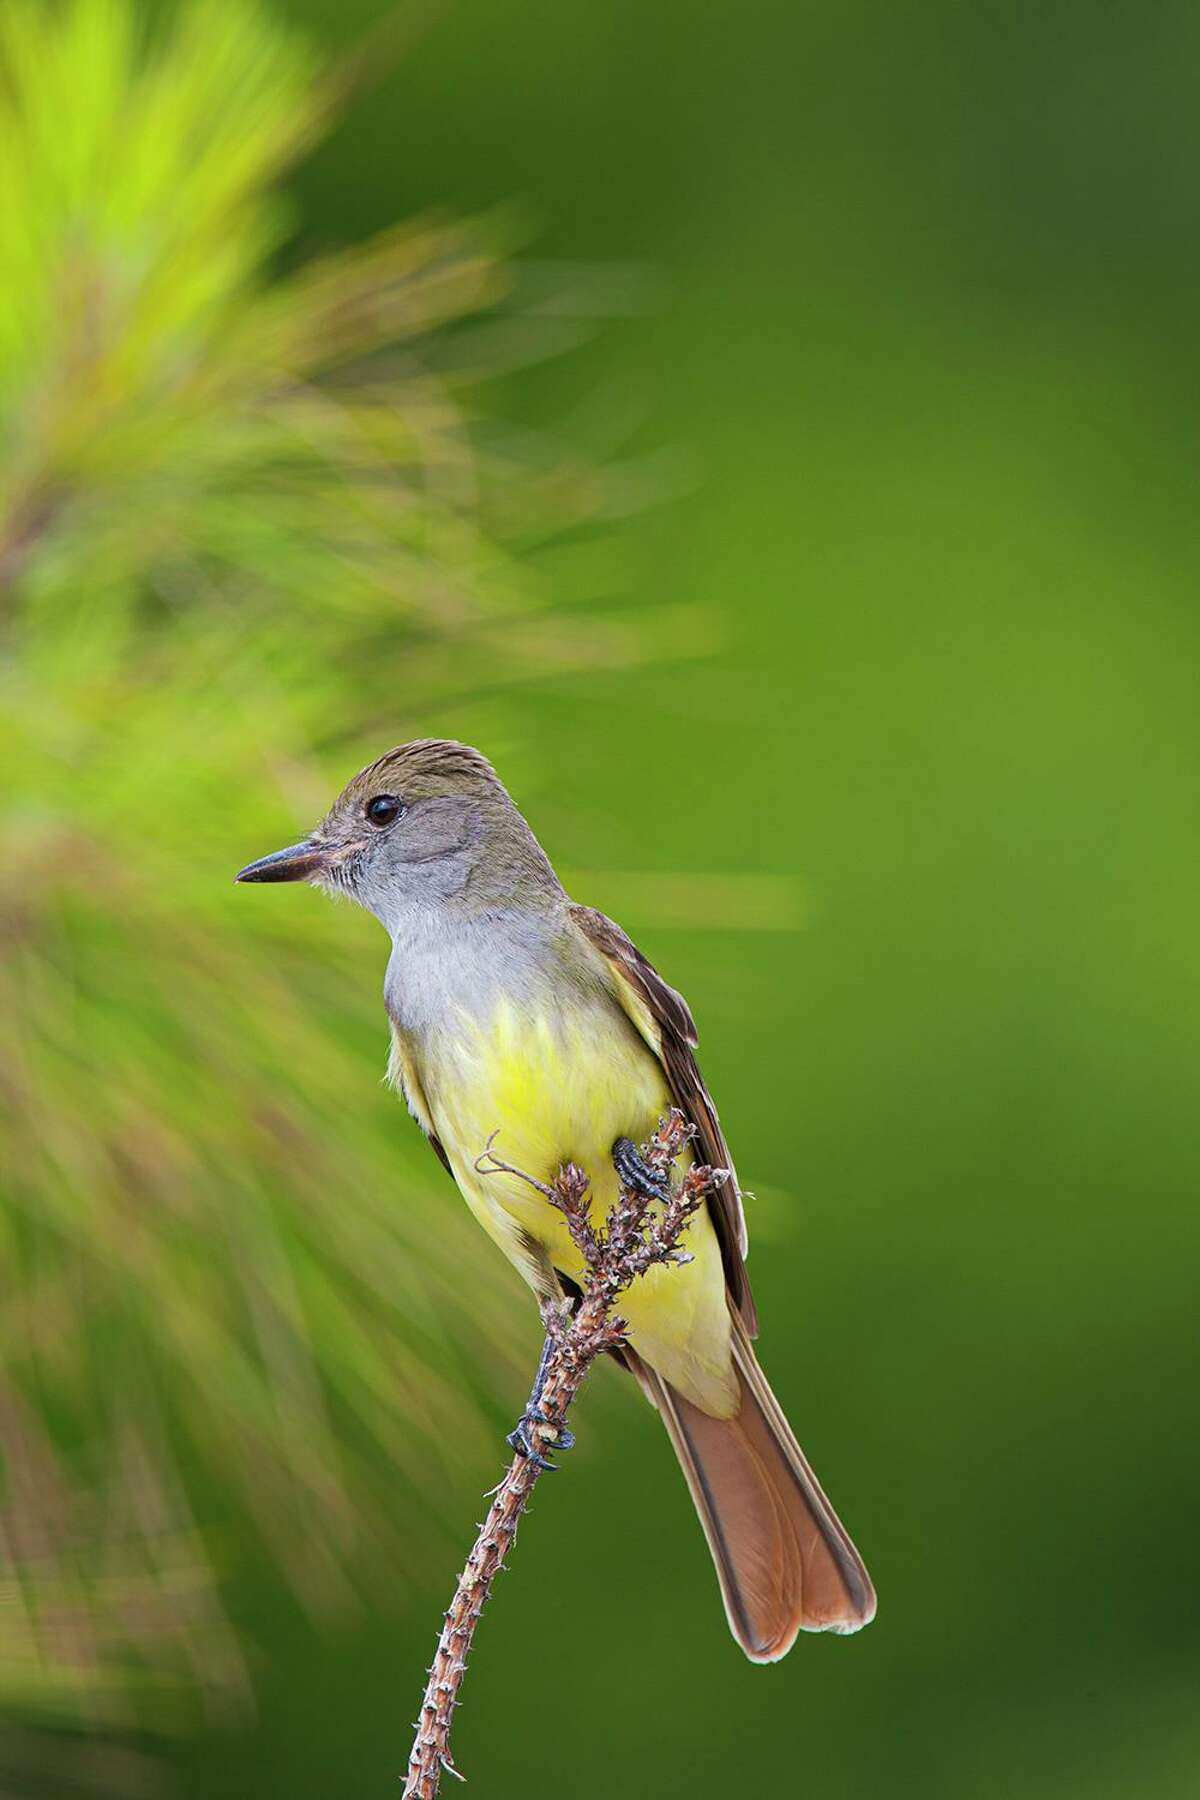 The quick whistled notes of the great crested flycatcher ring out from the forest canopy this spring.